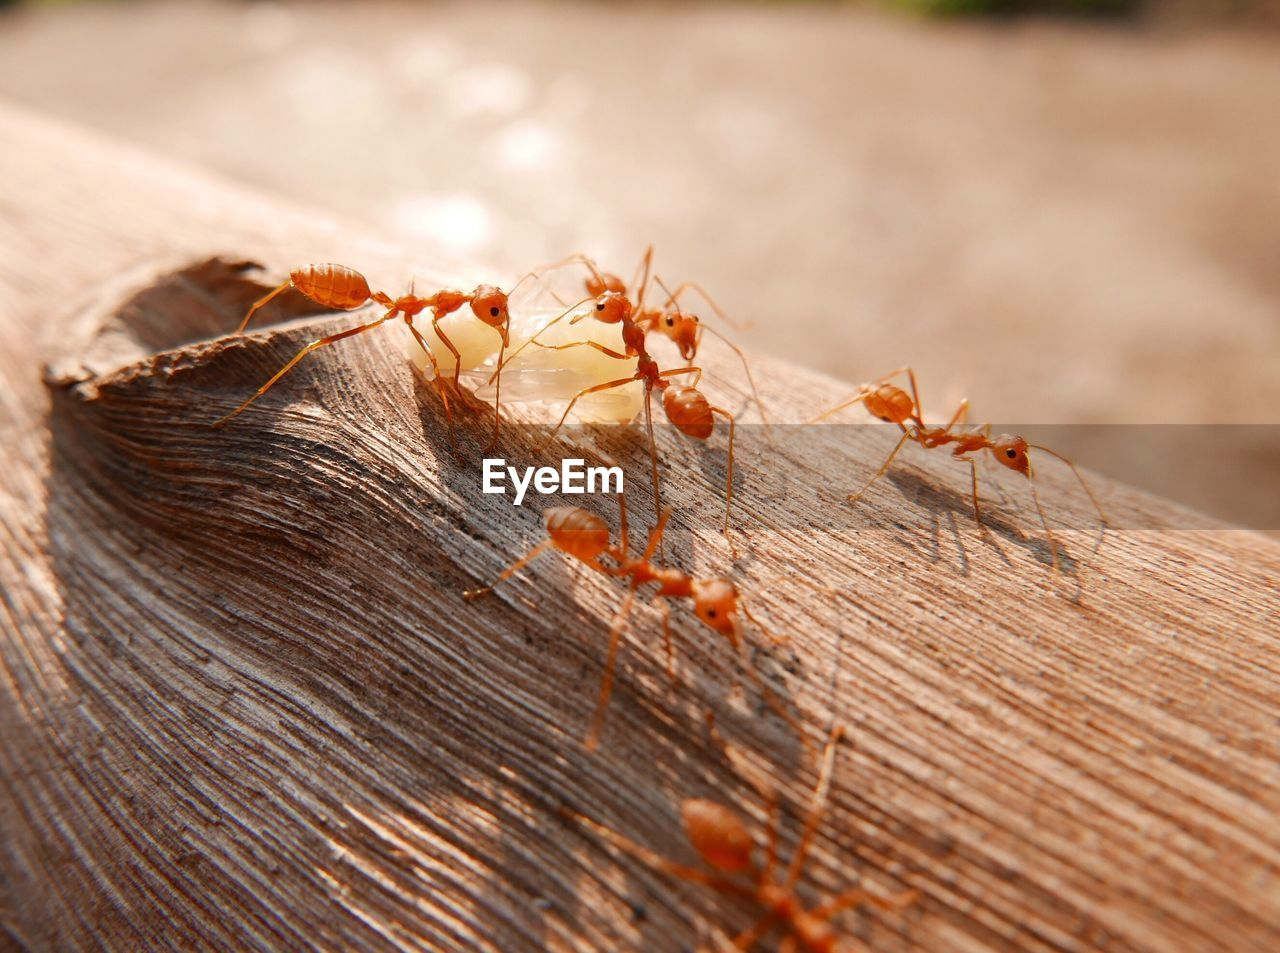 Close-Up Of Ants On Log